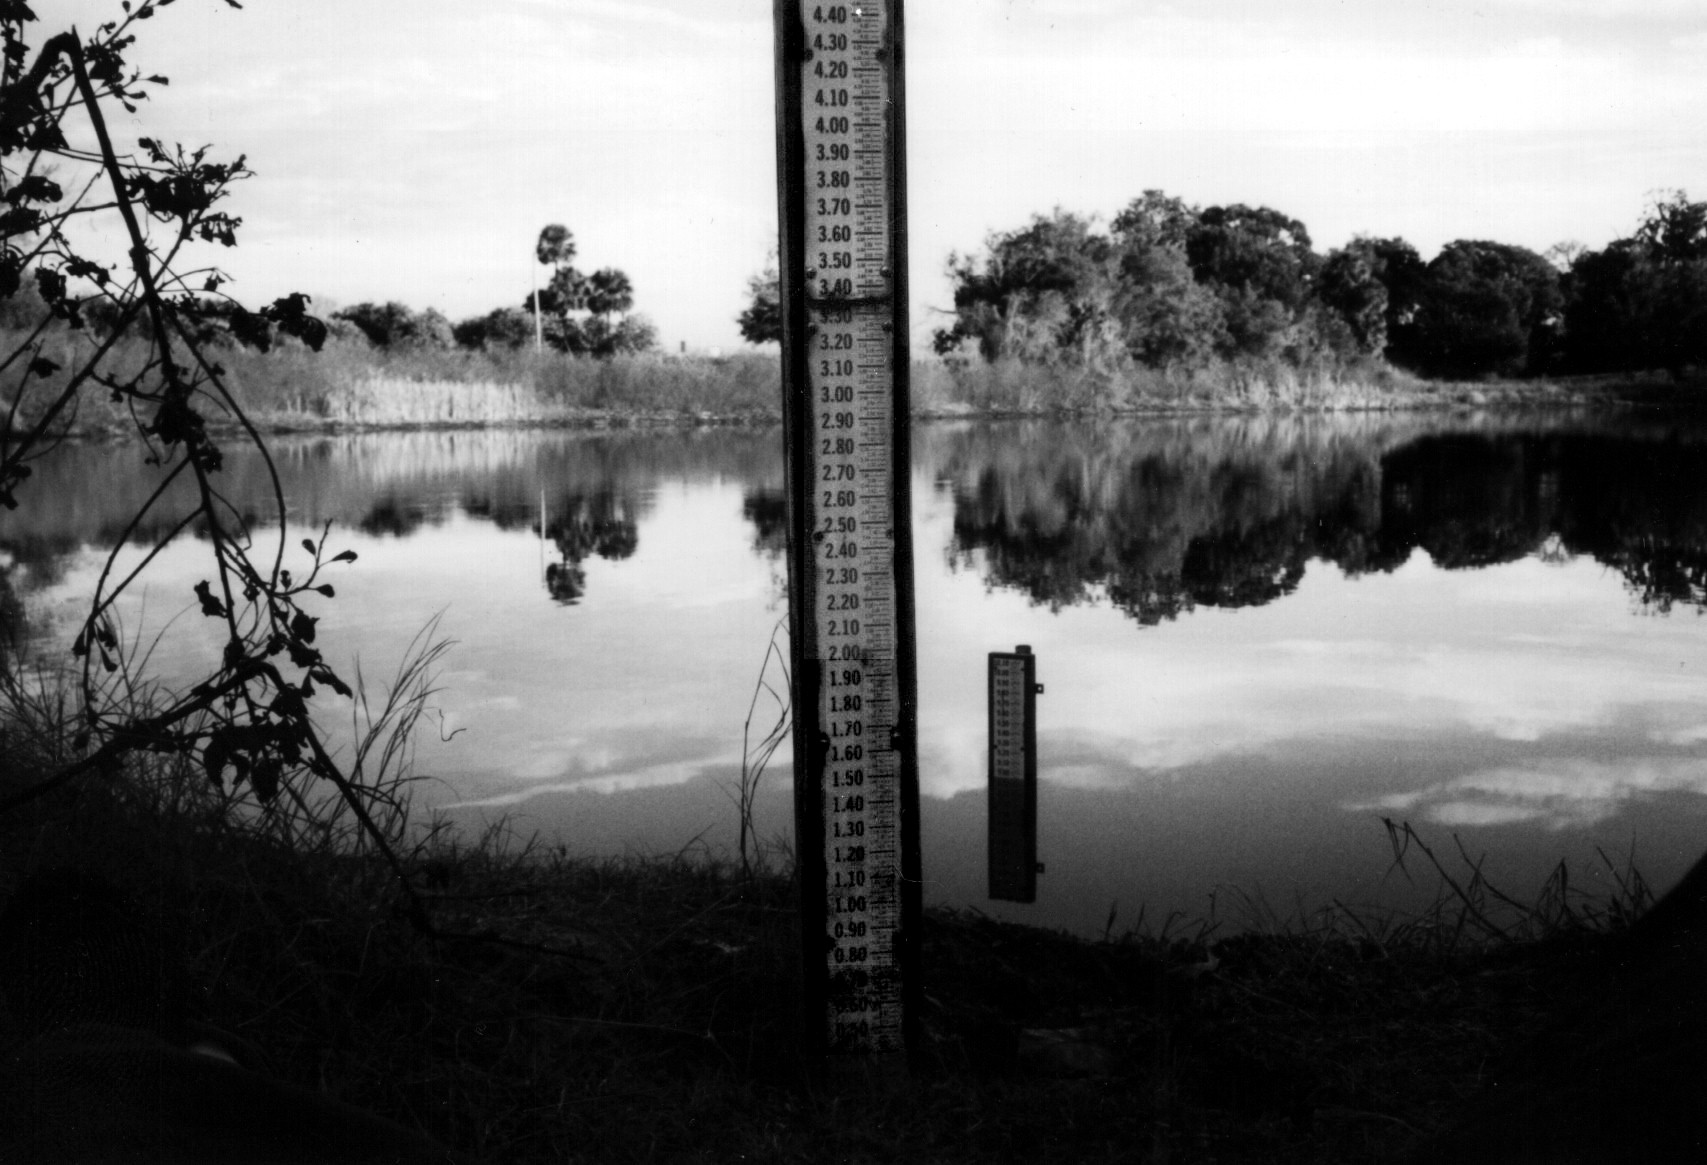 Staff gage at Lake Helen, Volusia County